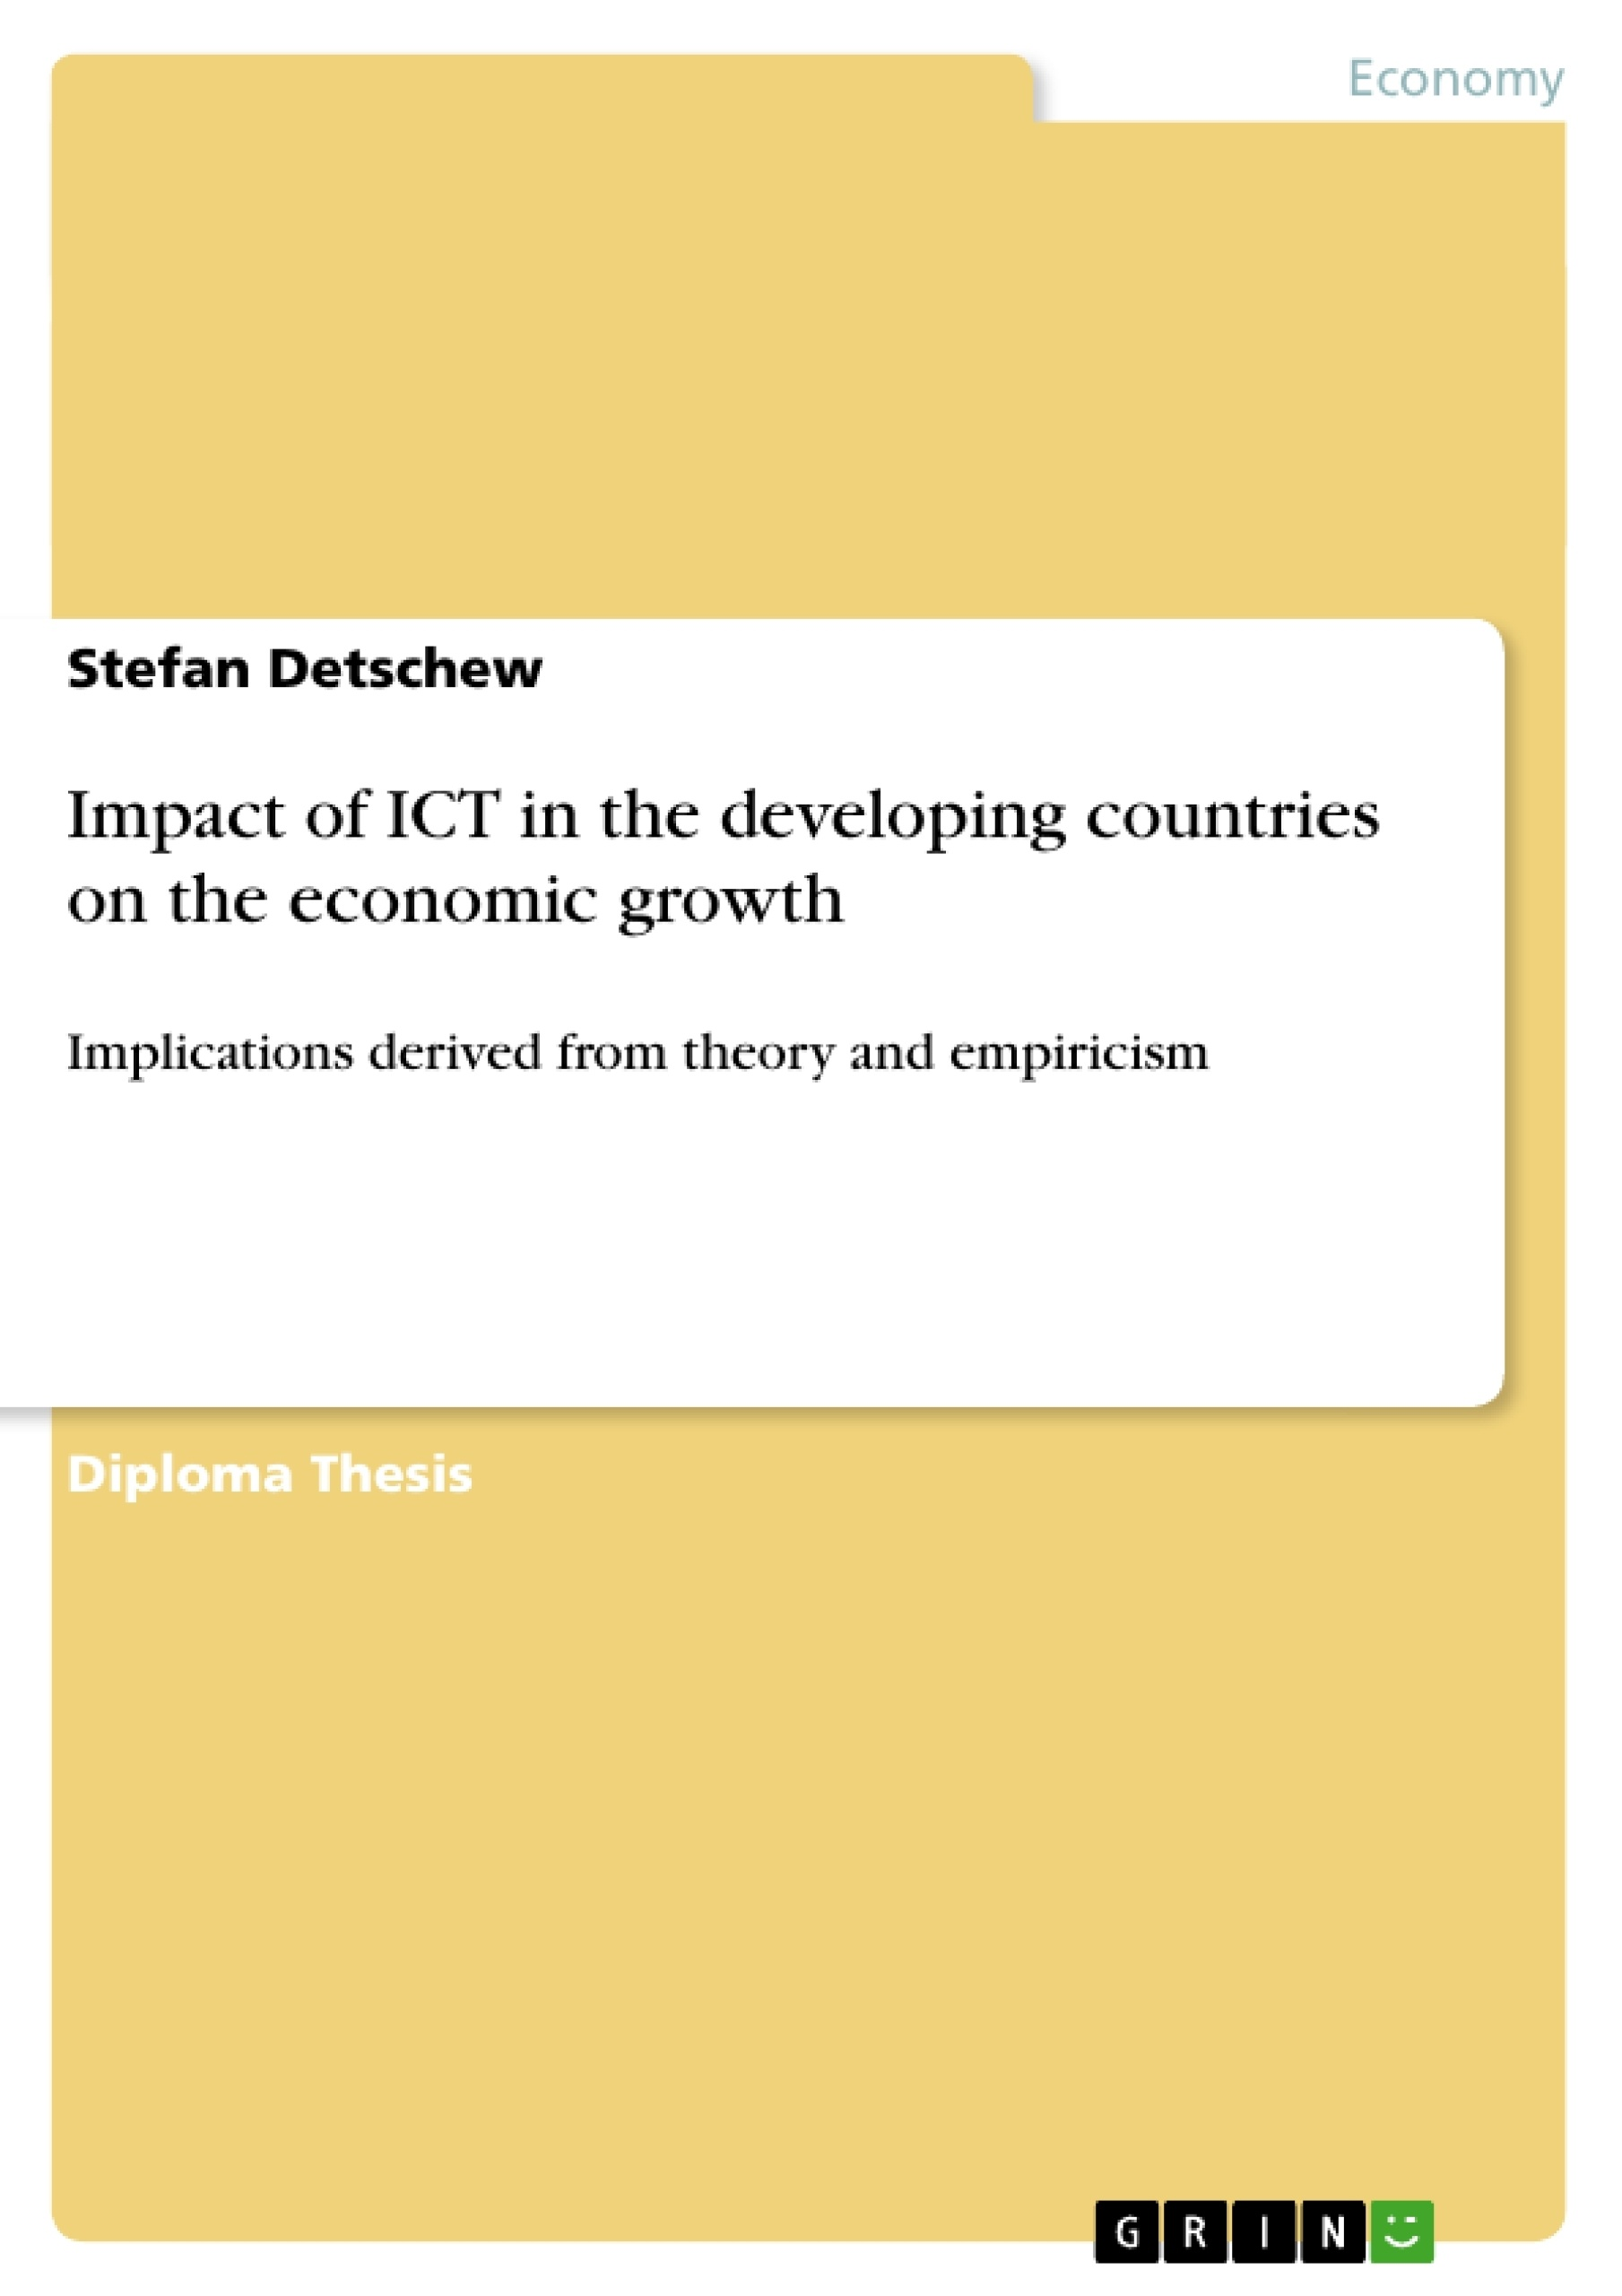 Title: Impact of ICT in the developing countries on the economic growth